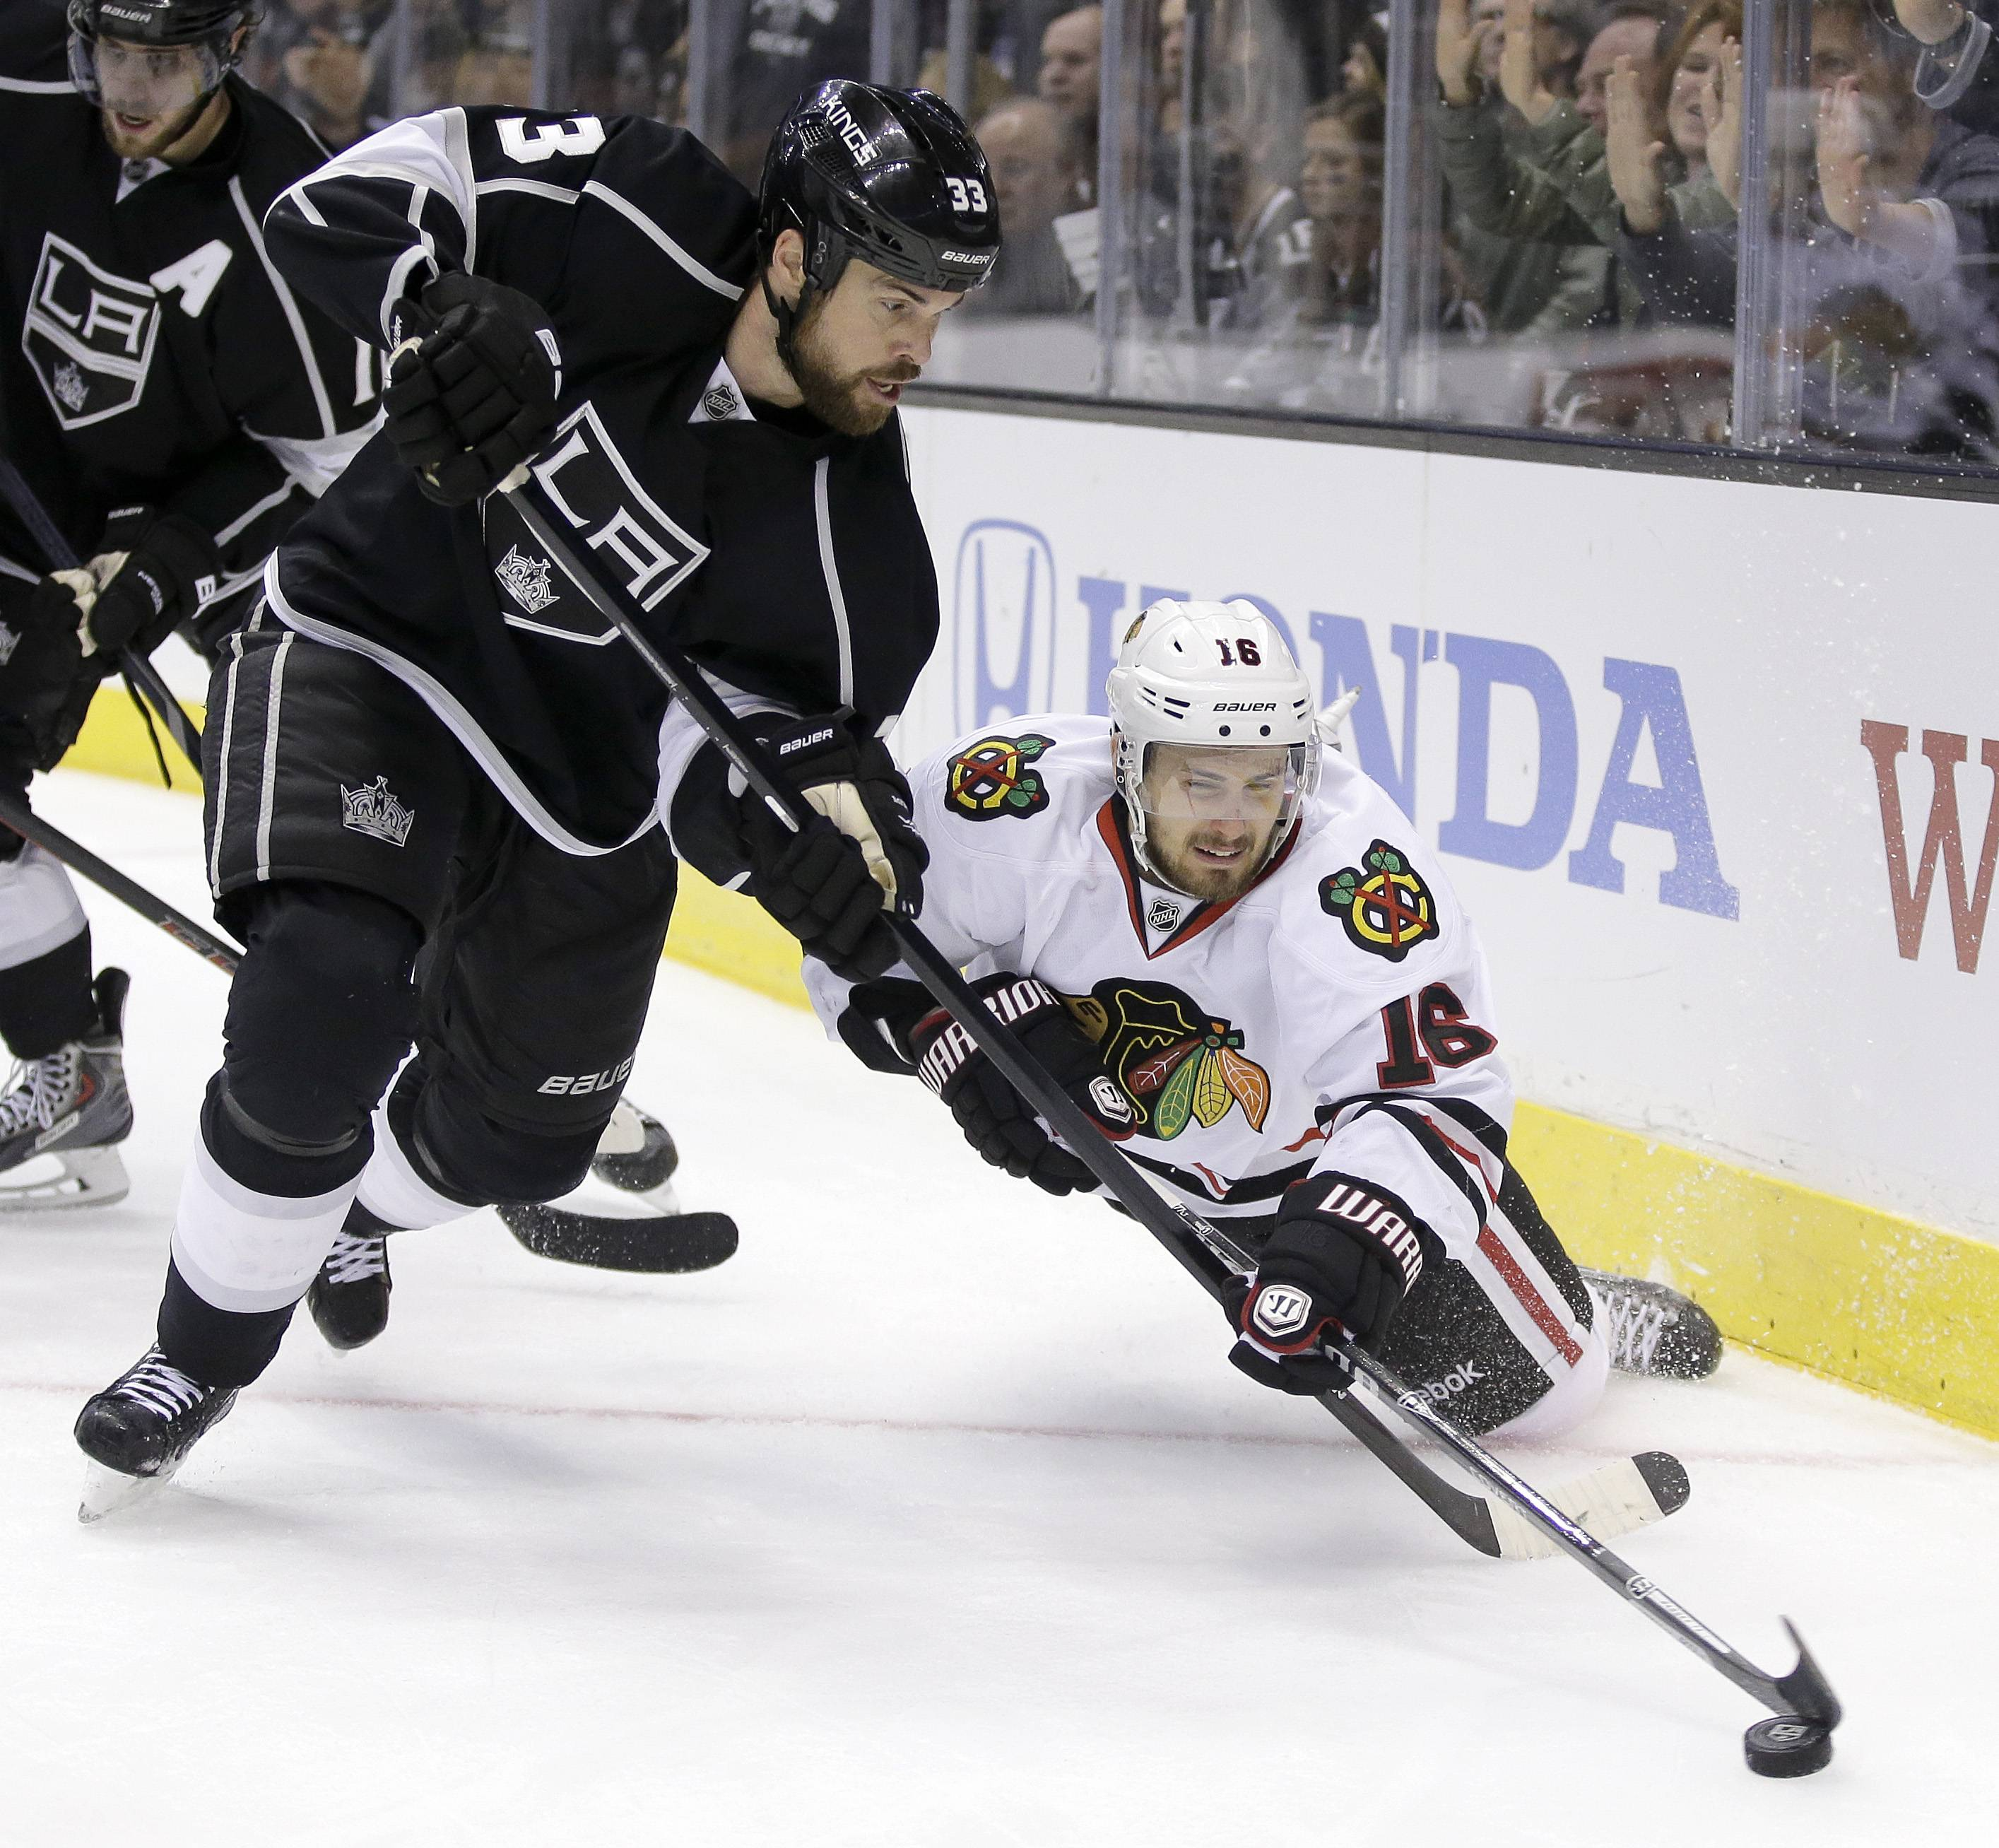 Los Angeles Kings defenseman Willie Mitchell, left, steals the puck from Chicago Blackhawks center Marcus Kruger during the third period of Game 3 of the Western Conference finals of the NHL hockey Stanley Cup playoffs in Los Angeles, Saturday, May 24, 2014.